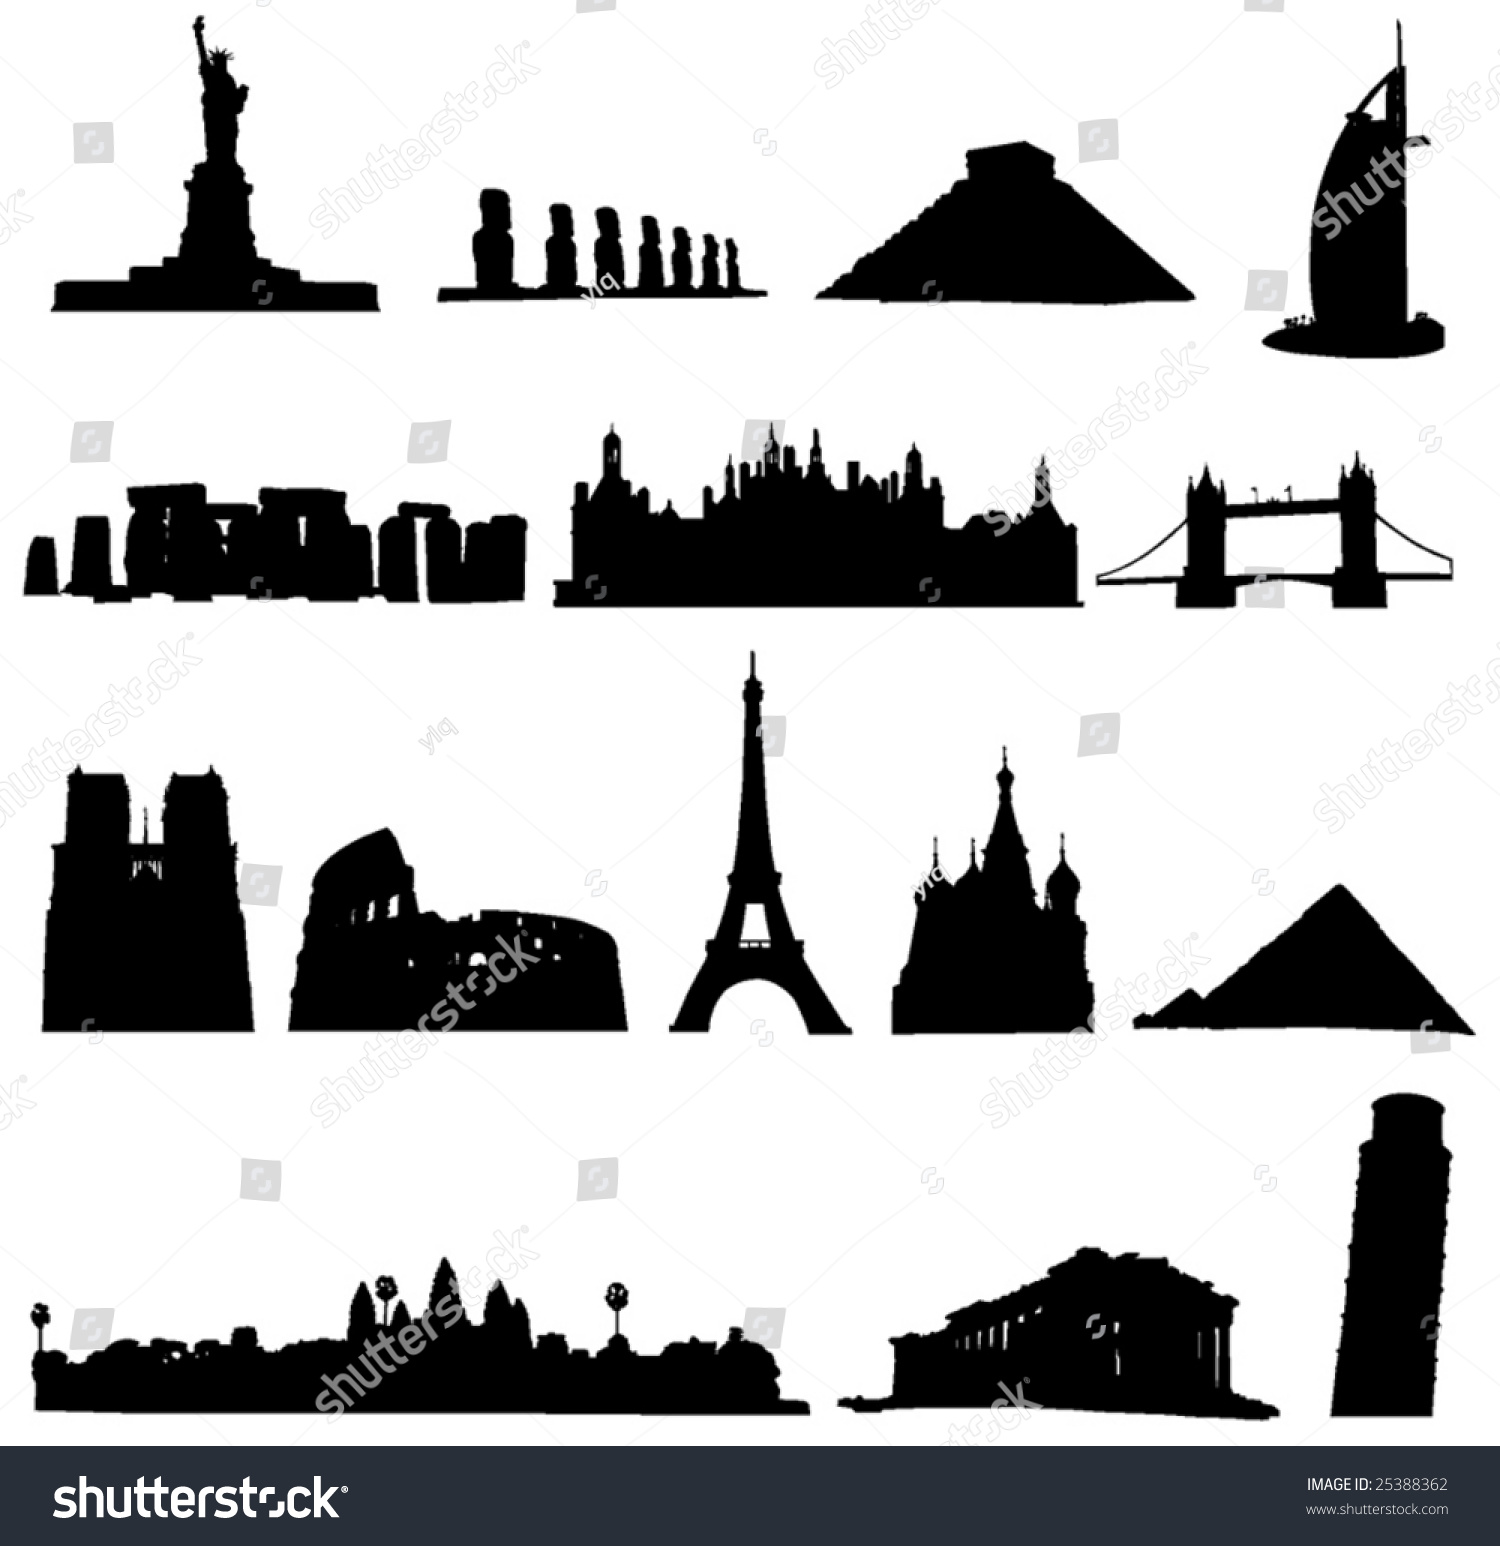 world renowned architecture and relics silhouette stock